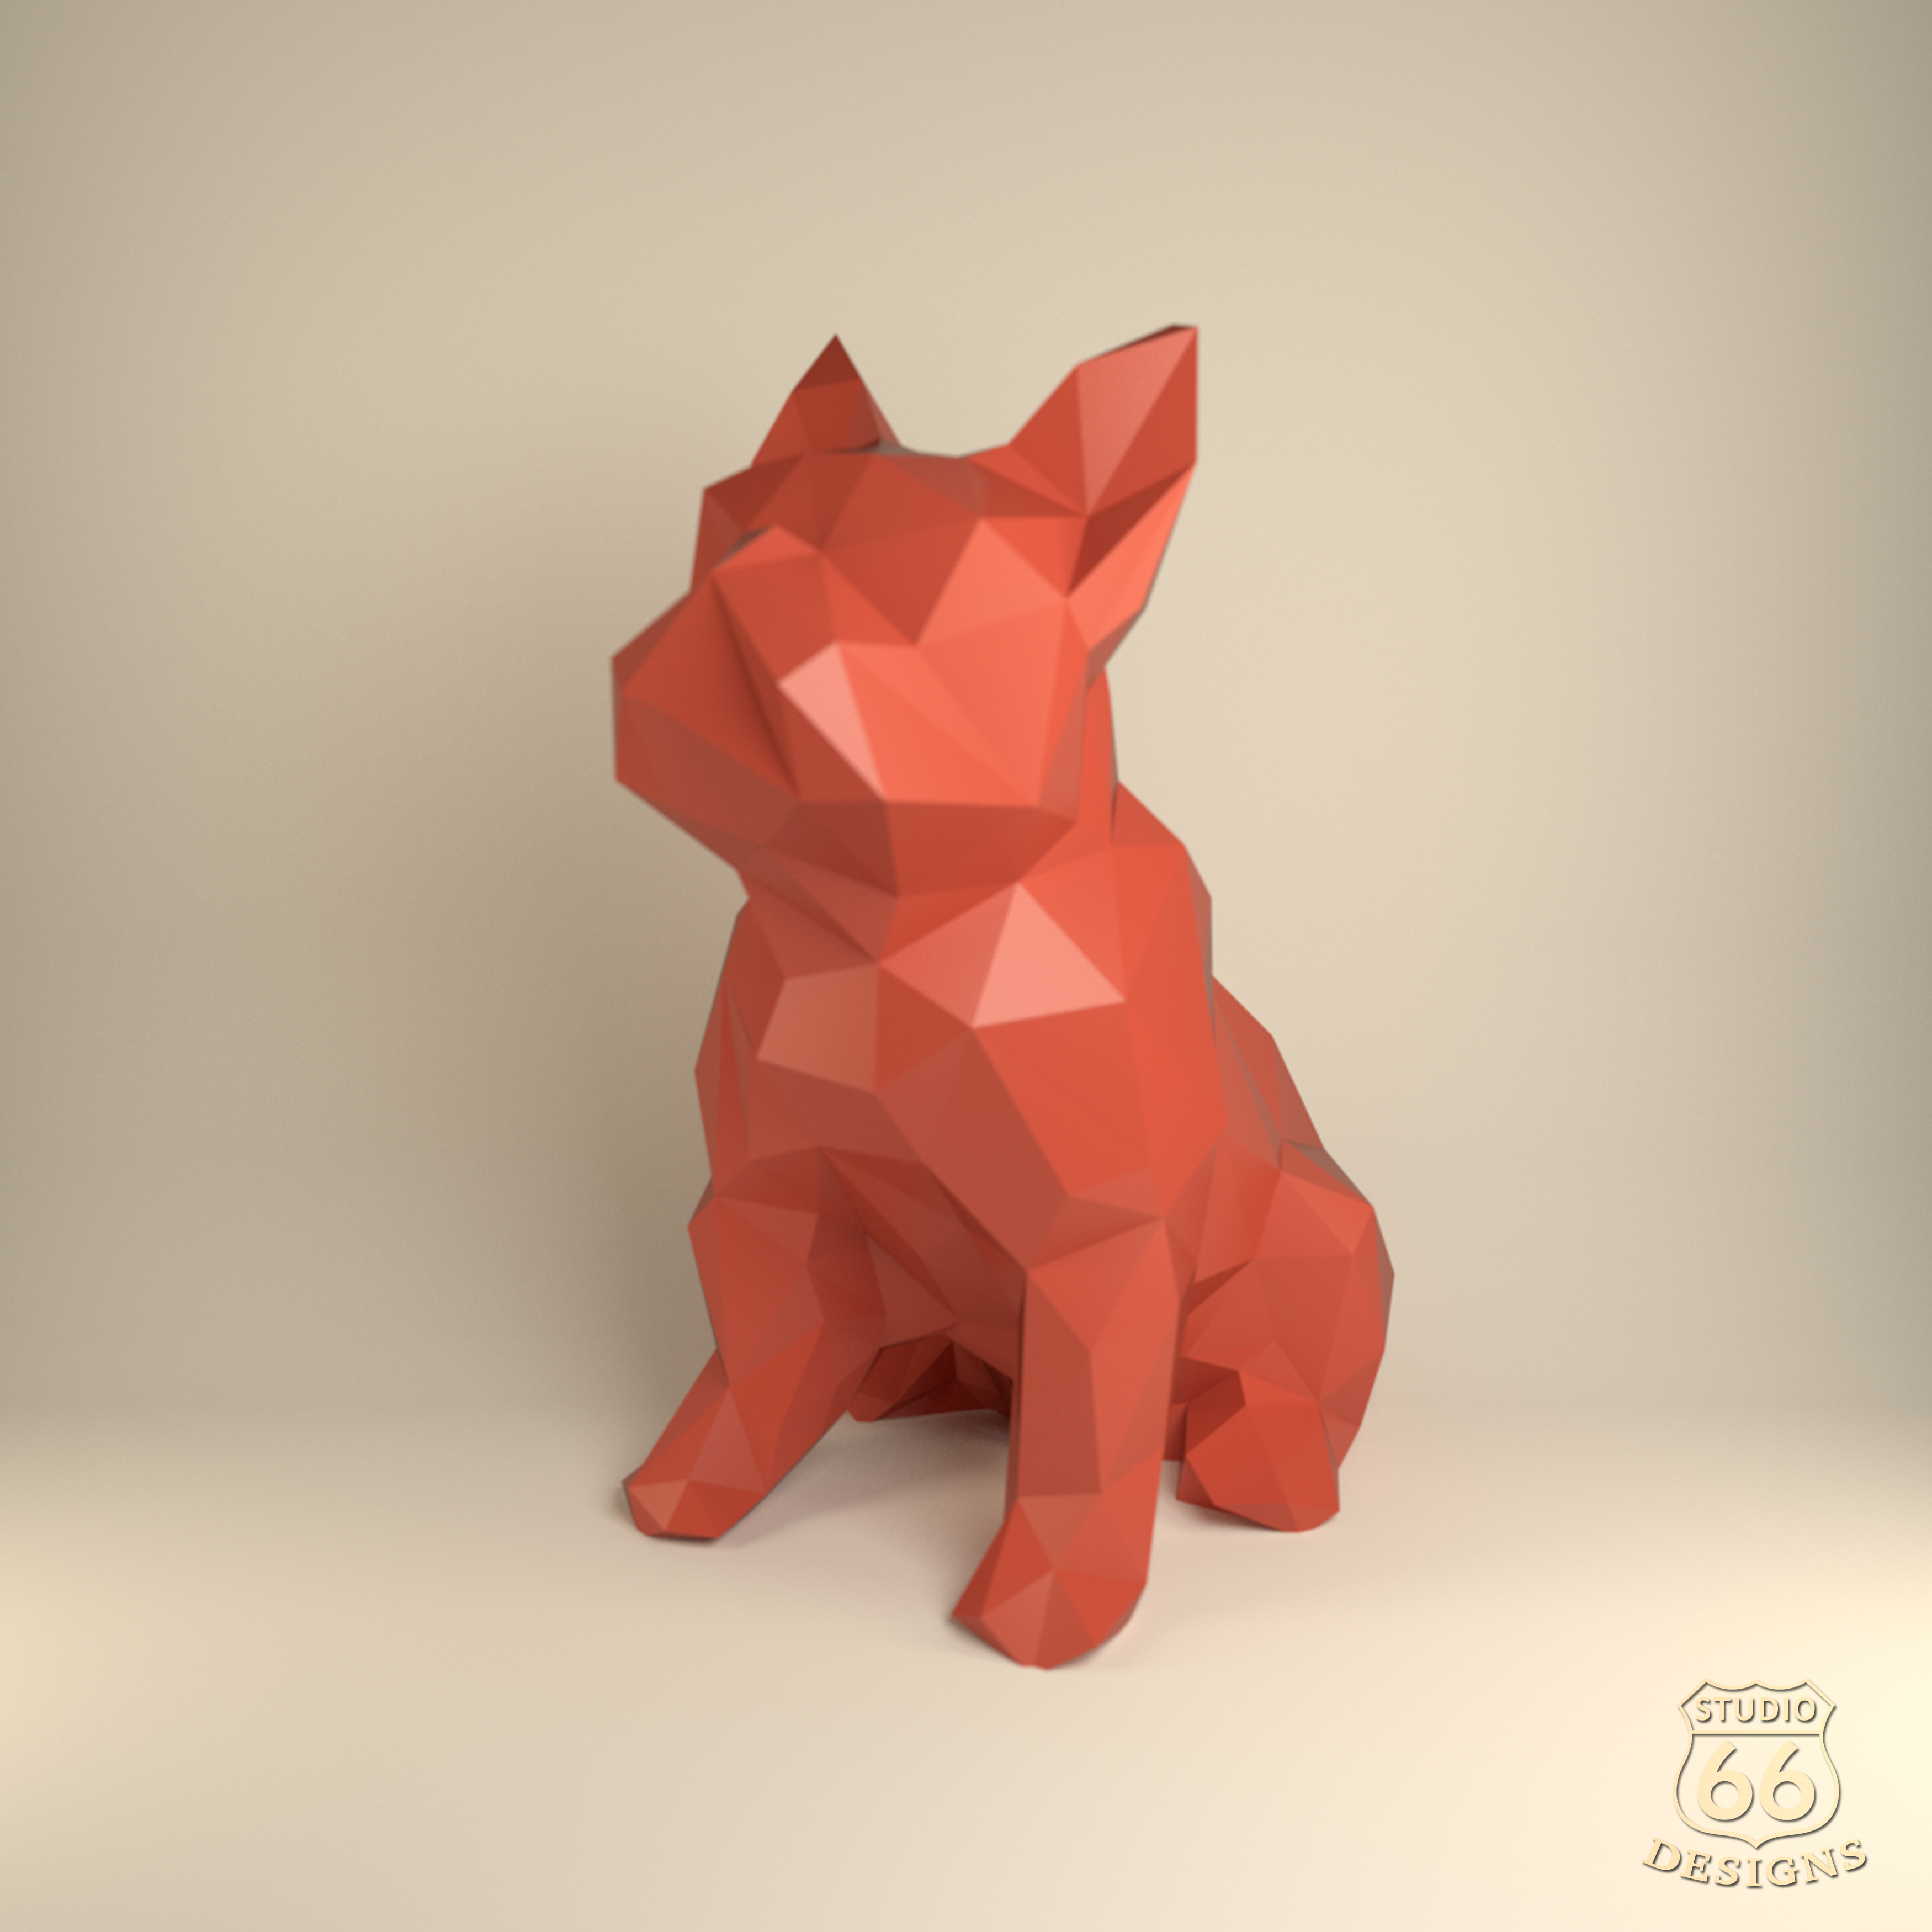 French Bulldog, Papercraft Bulldog, Paper Dog, Paper Animals, Papertoy, Home Decor, Frenchie, 3D papercraft model, lowpoly DIY, hobby idea example image 1